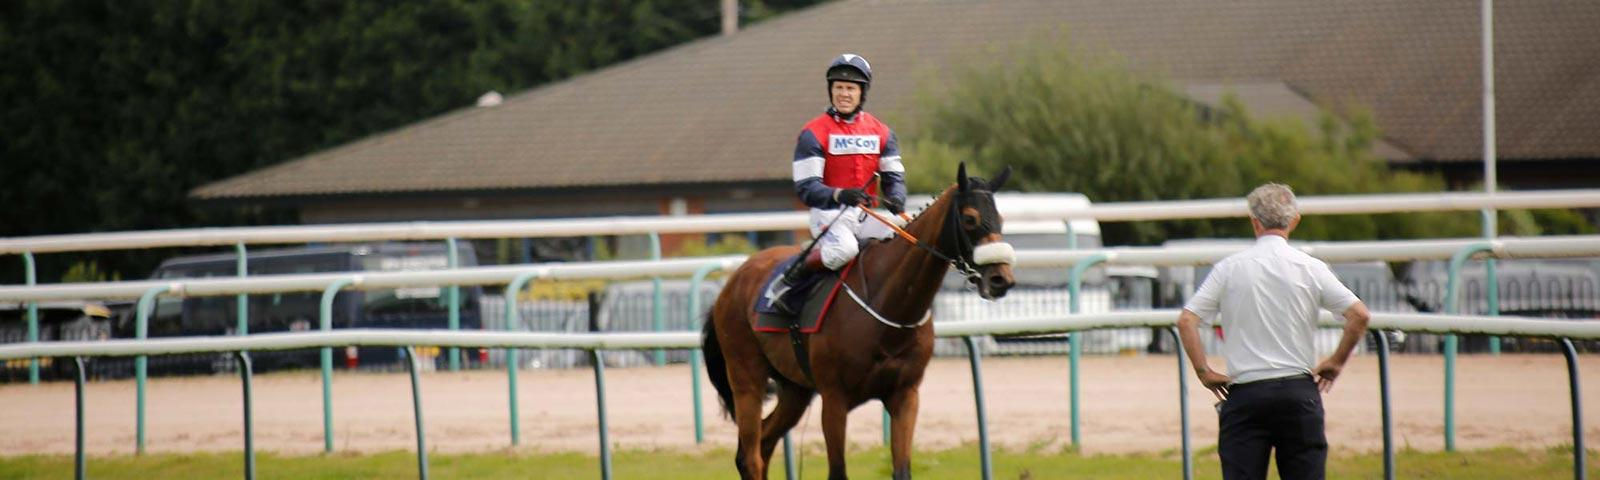 Horse and Jockey at Southwell Racecourse